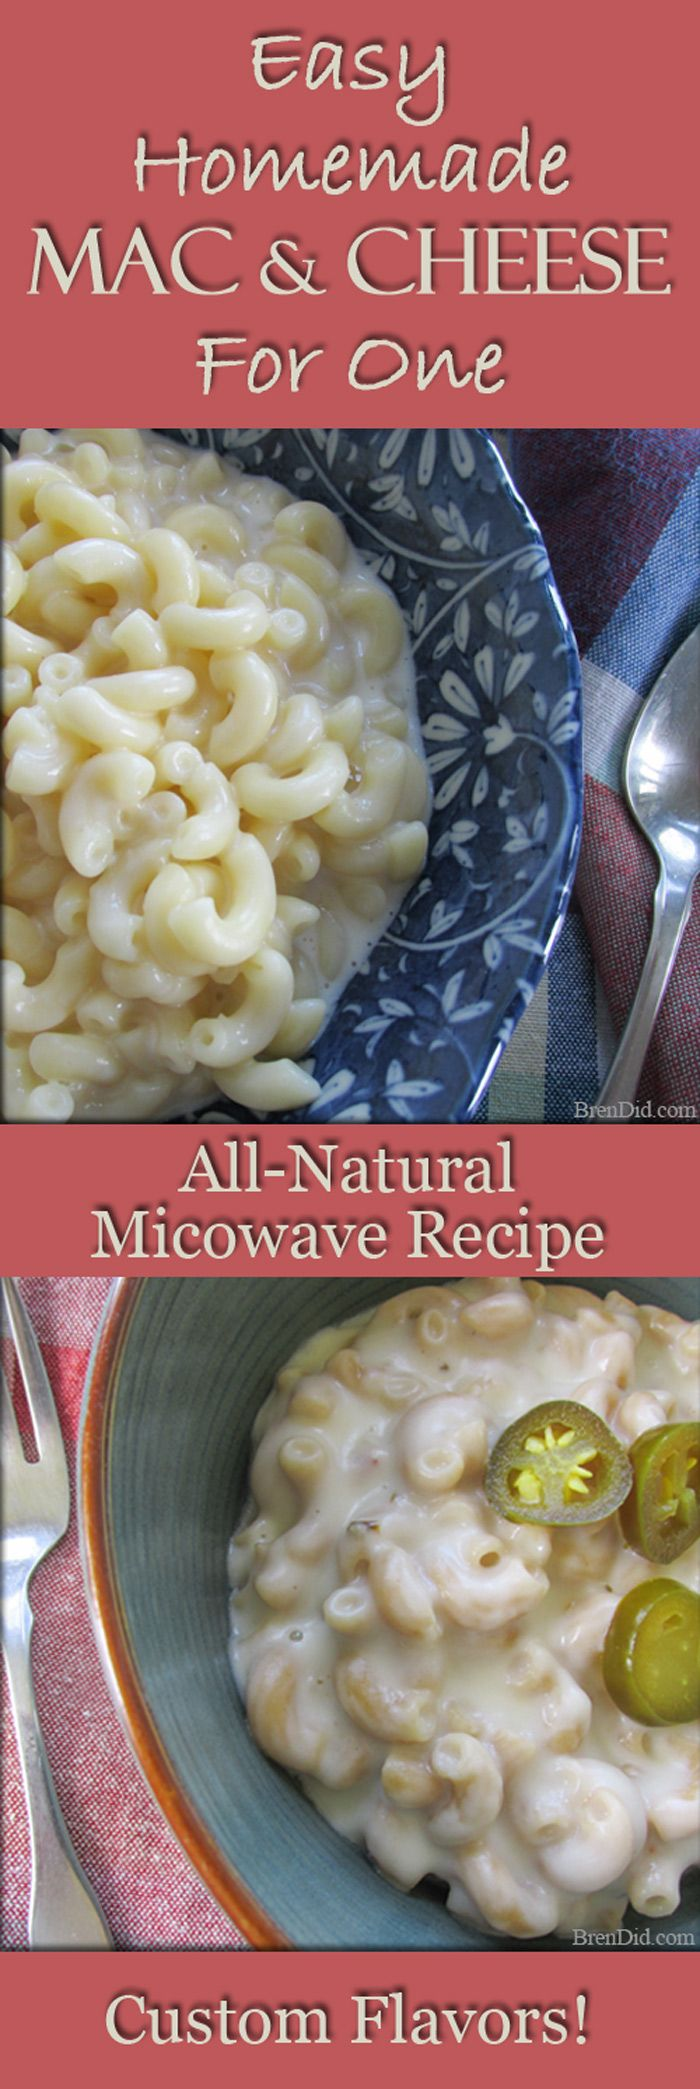 Easy Homemade Mac and Cheese for One | EASY recipe for single serve microwave mac and cheese. Make it at home in 6 minutes. Eliminate artificial ingredients without sacrificing convenience. http://brendid.com/easy-homemade-mac-and-cheese-for-one/